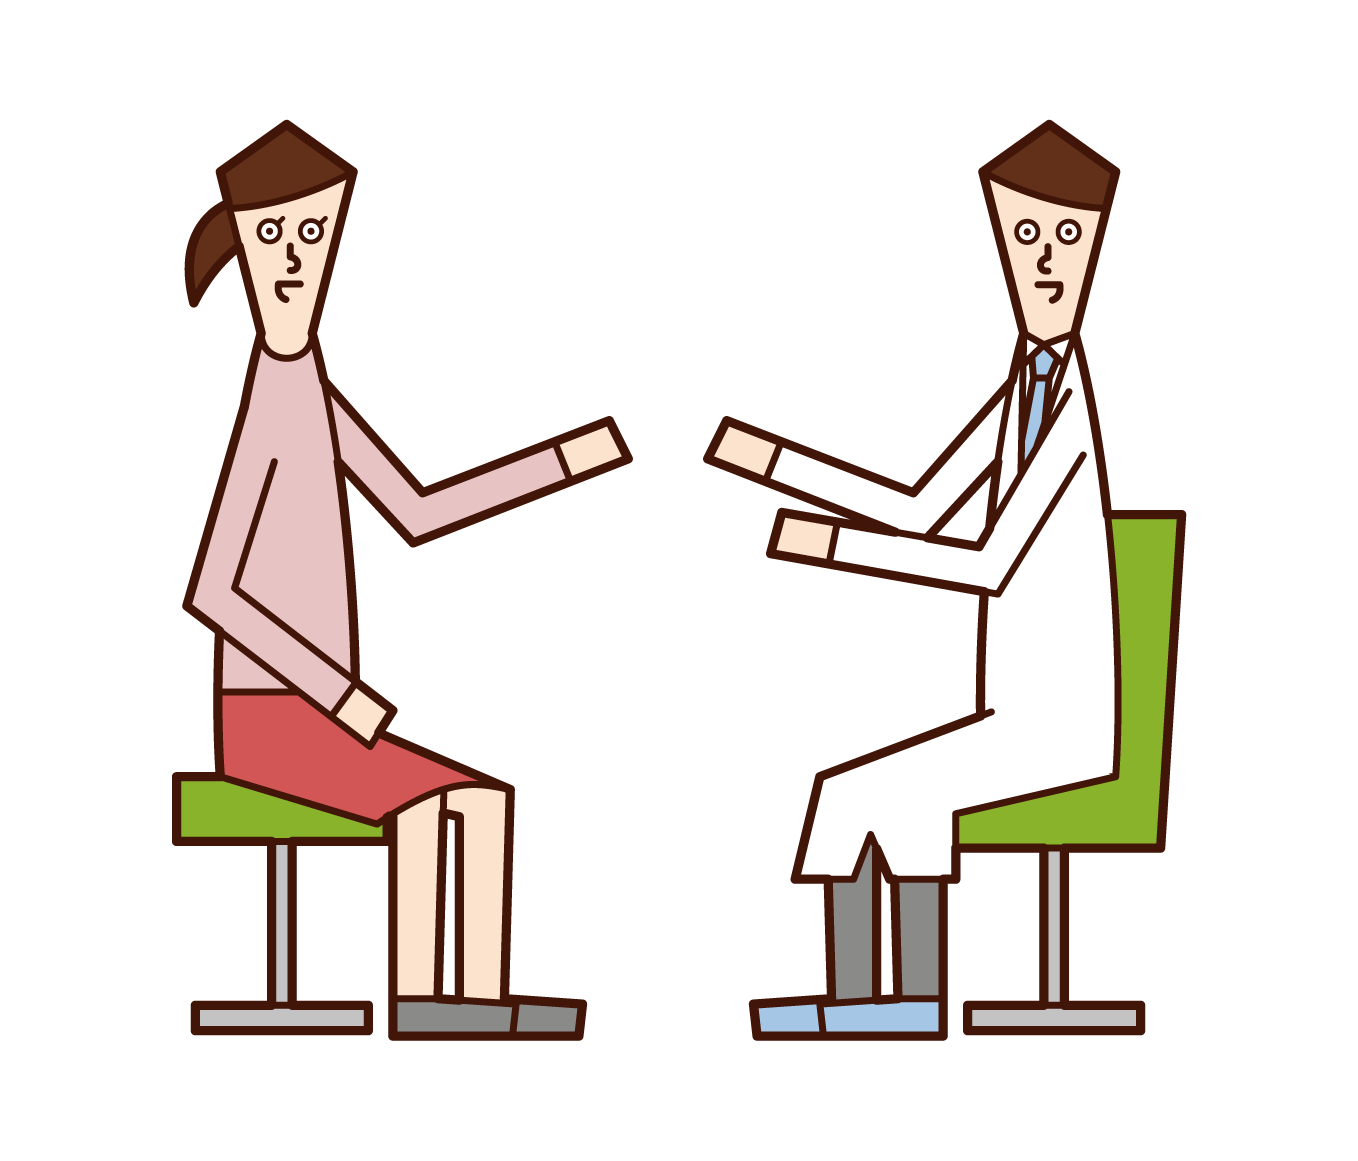 Illustration of a psychological counselor and clinical psychologist (man)